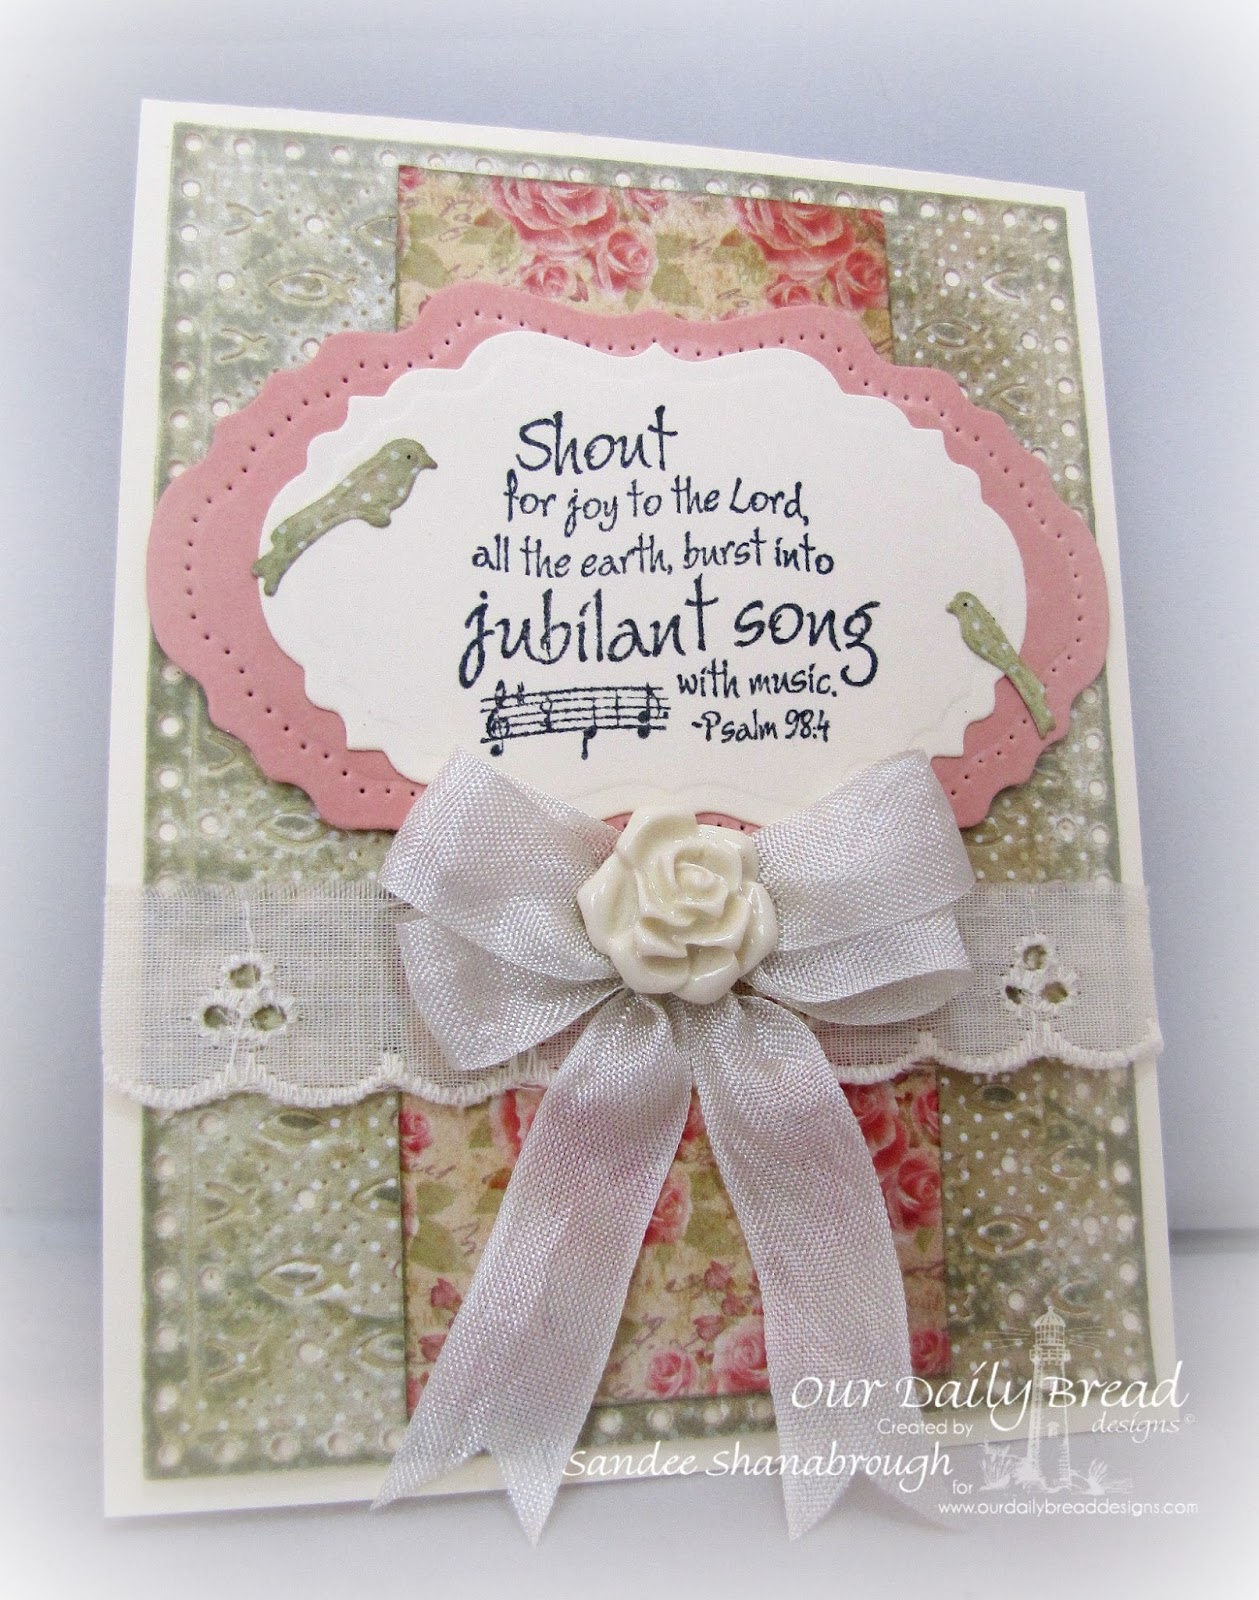 Stamps - Music Speaks, ODBD Custom Faithful Fish Die and Debossing Plate, ODBD Custom Birdcage and Banners Die, ODBD Custom Vintage Flourish Pattern Die, ODBD Custom Vintage Labels Die, ODBD Blushing Rose Paper Collection